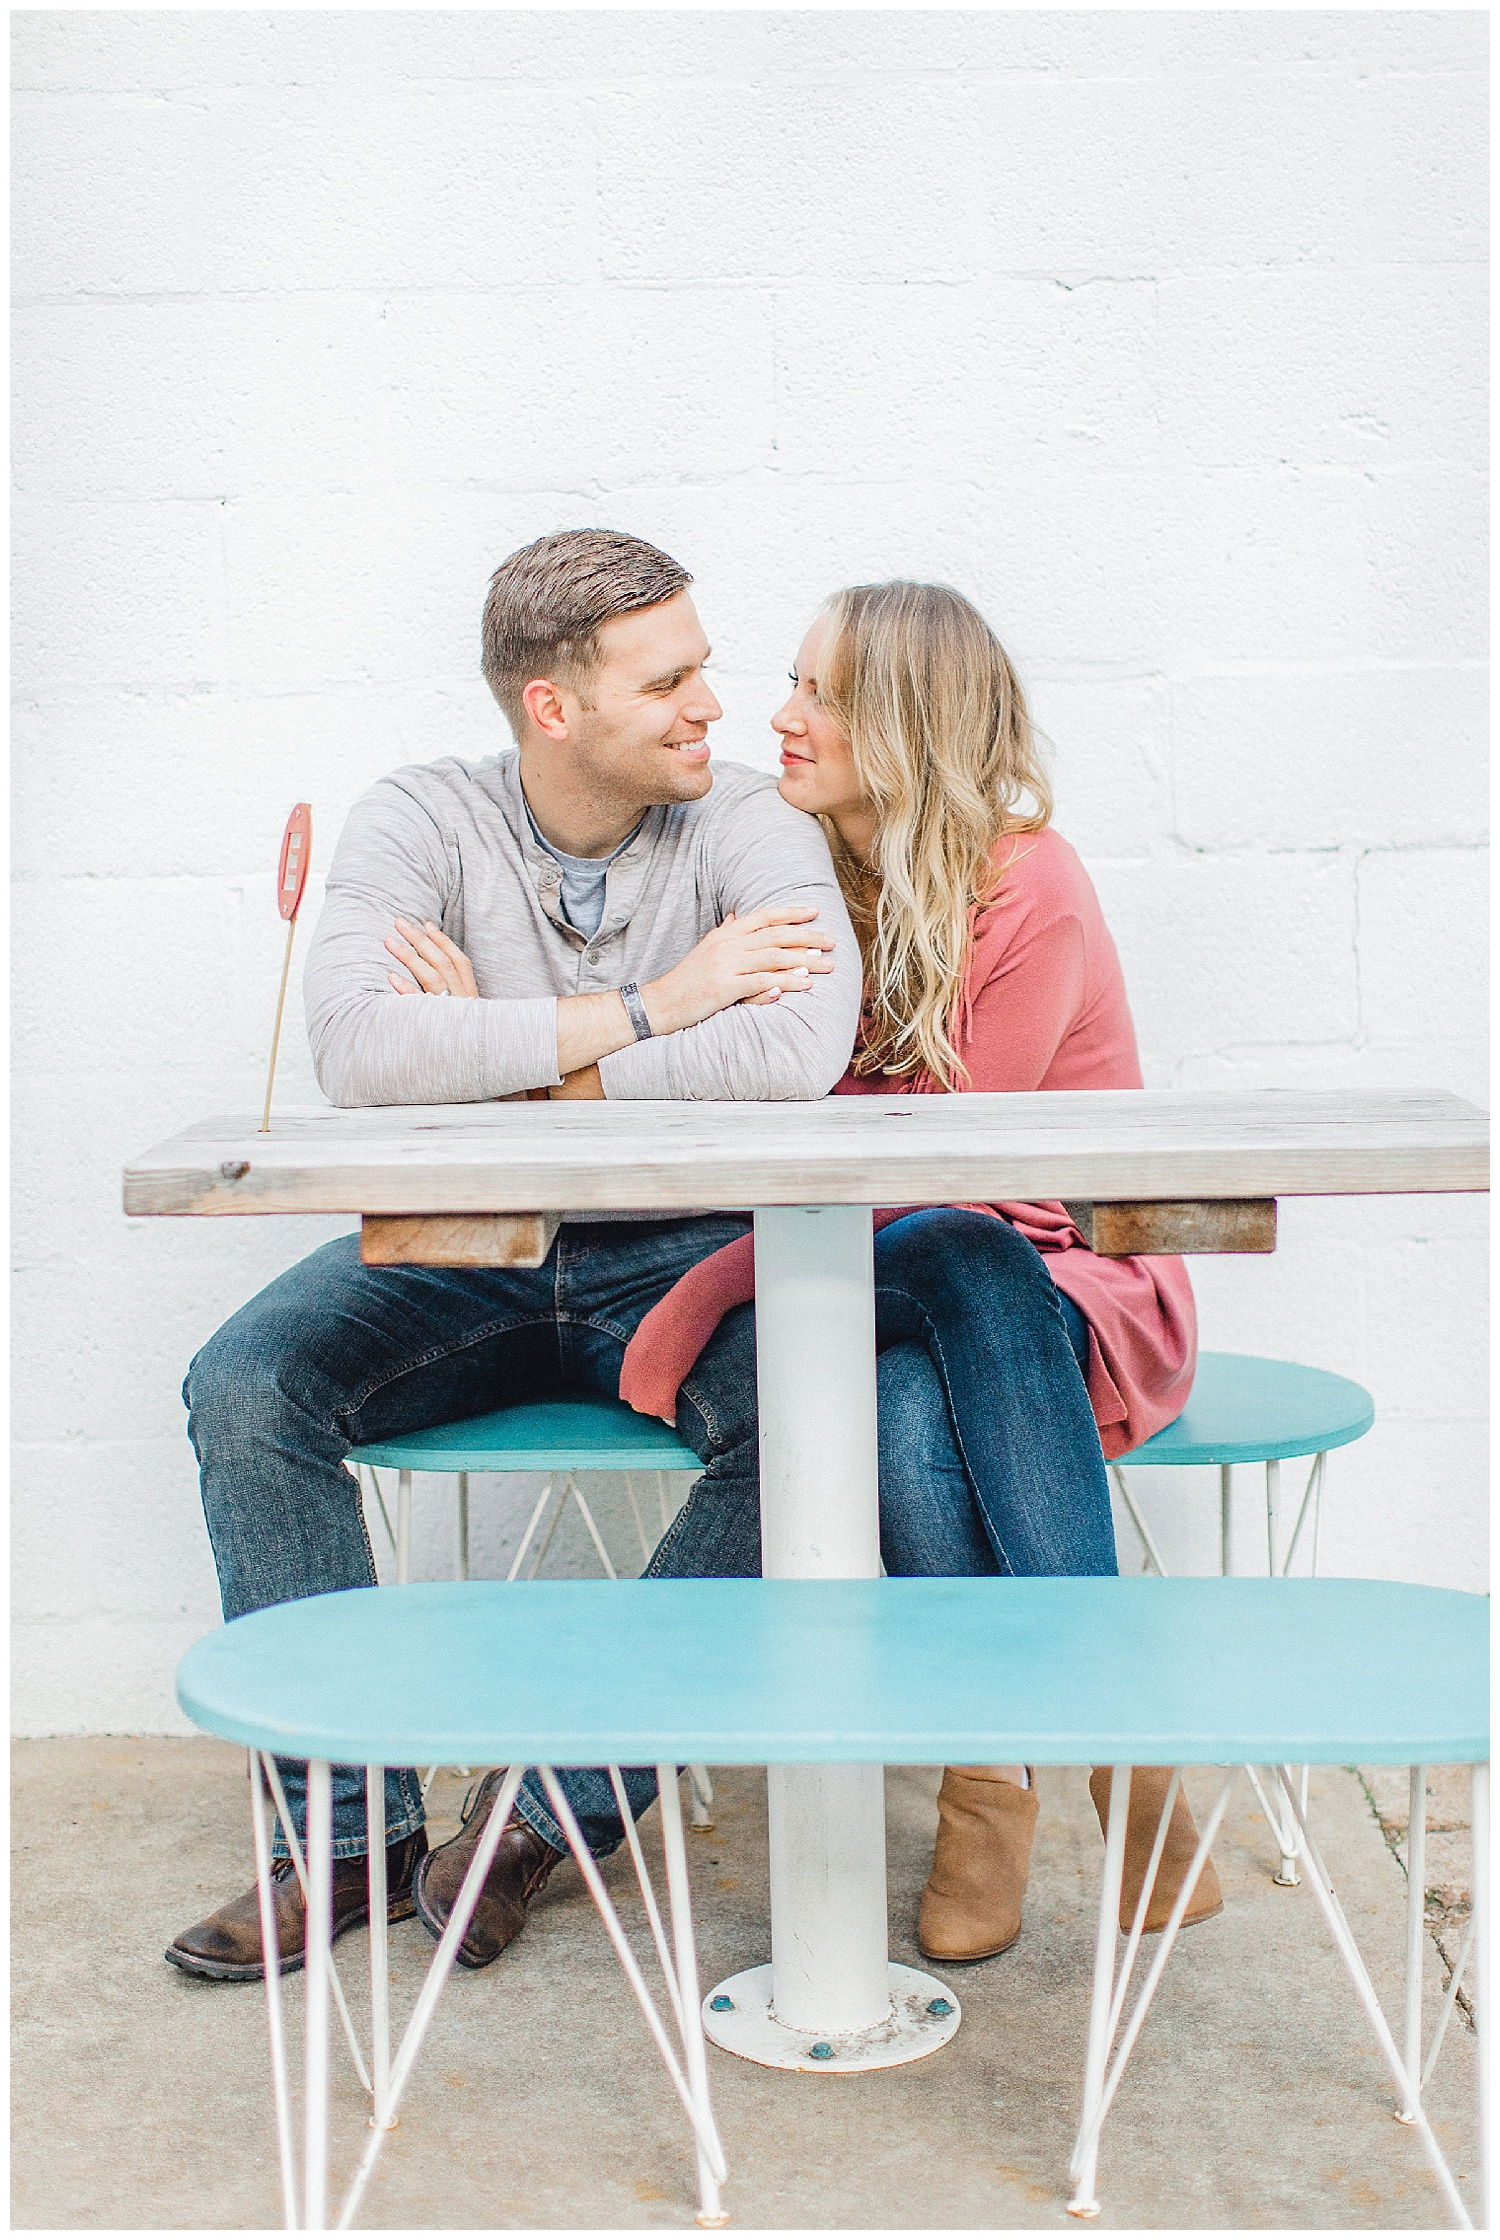 ERC_0795_Downtown Nashville Engagement Session at Barista Parlor | Emma Rose Company Wedding Photographer | Outfit Inspiration for Engagement Session | Kindred Light and Airy Photographer.jpg